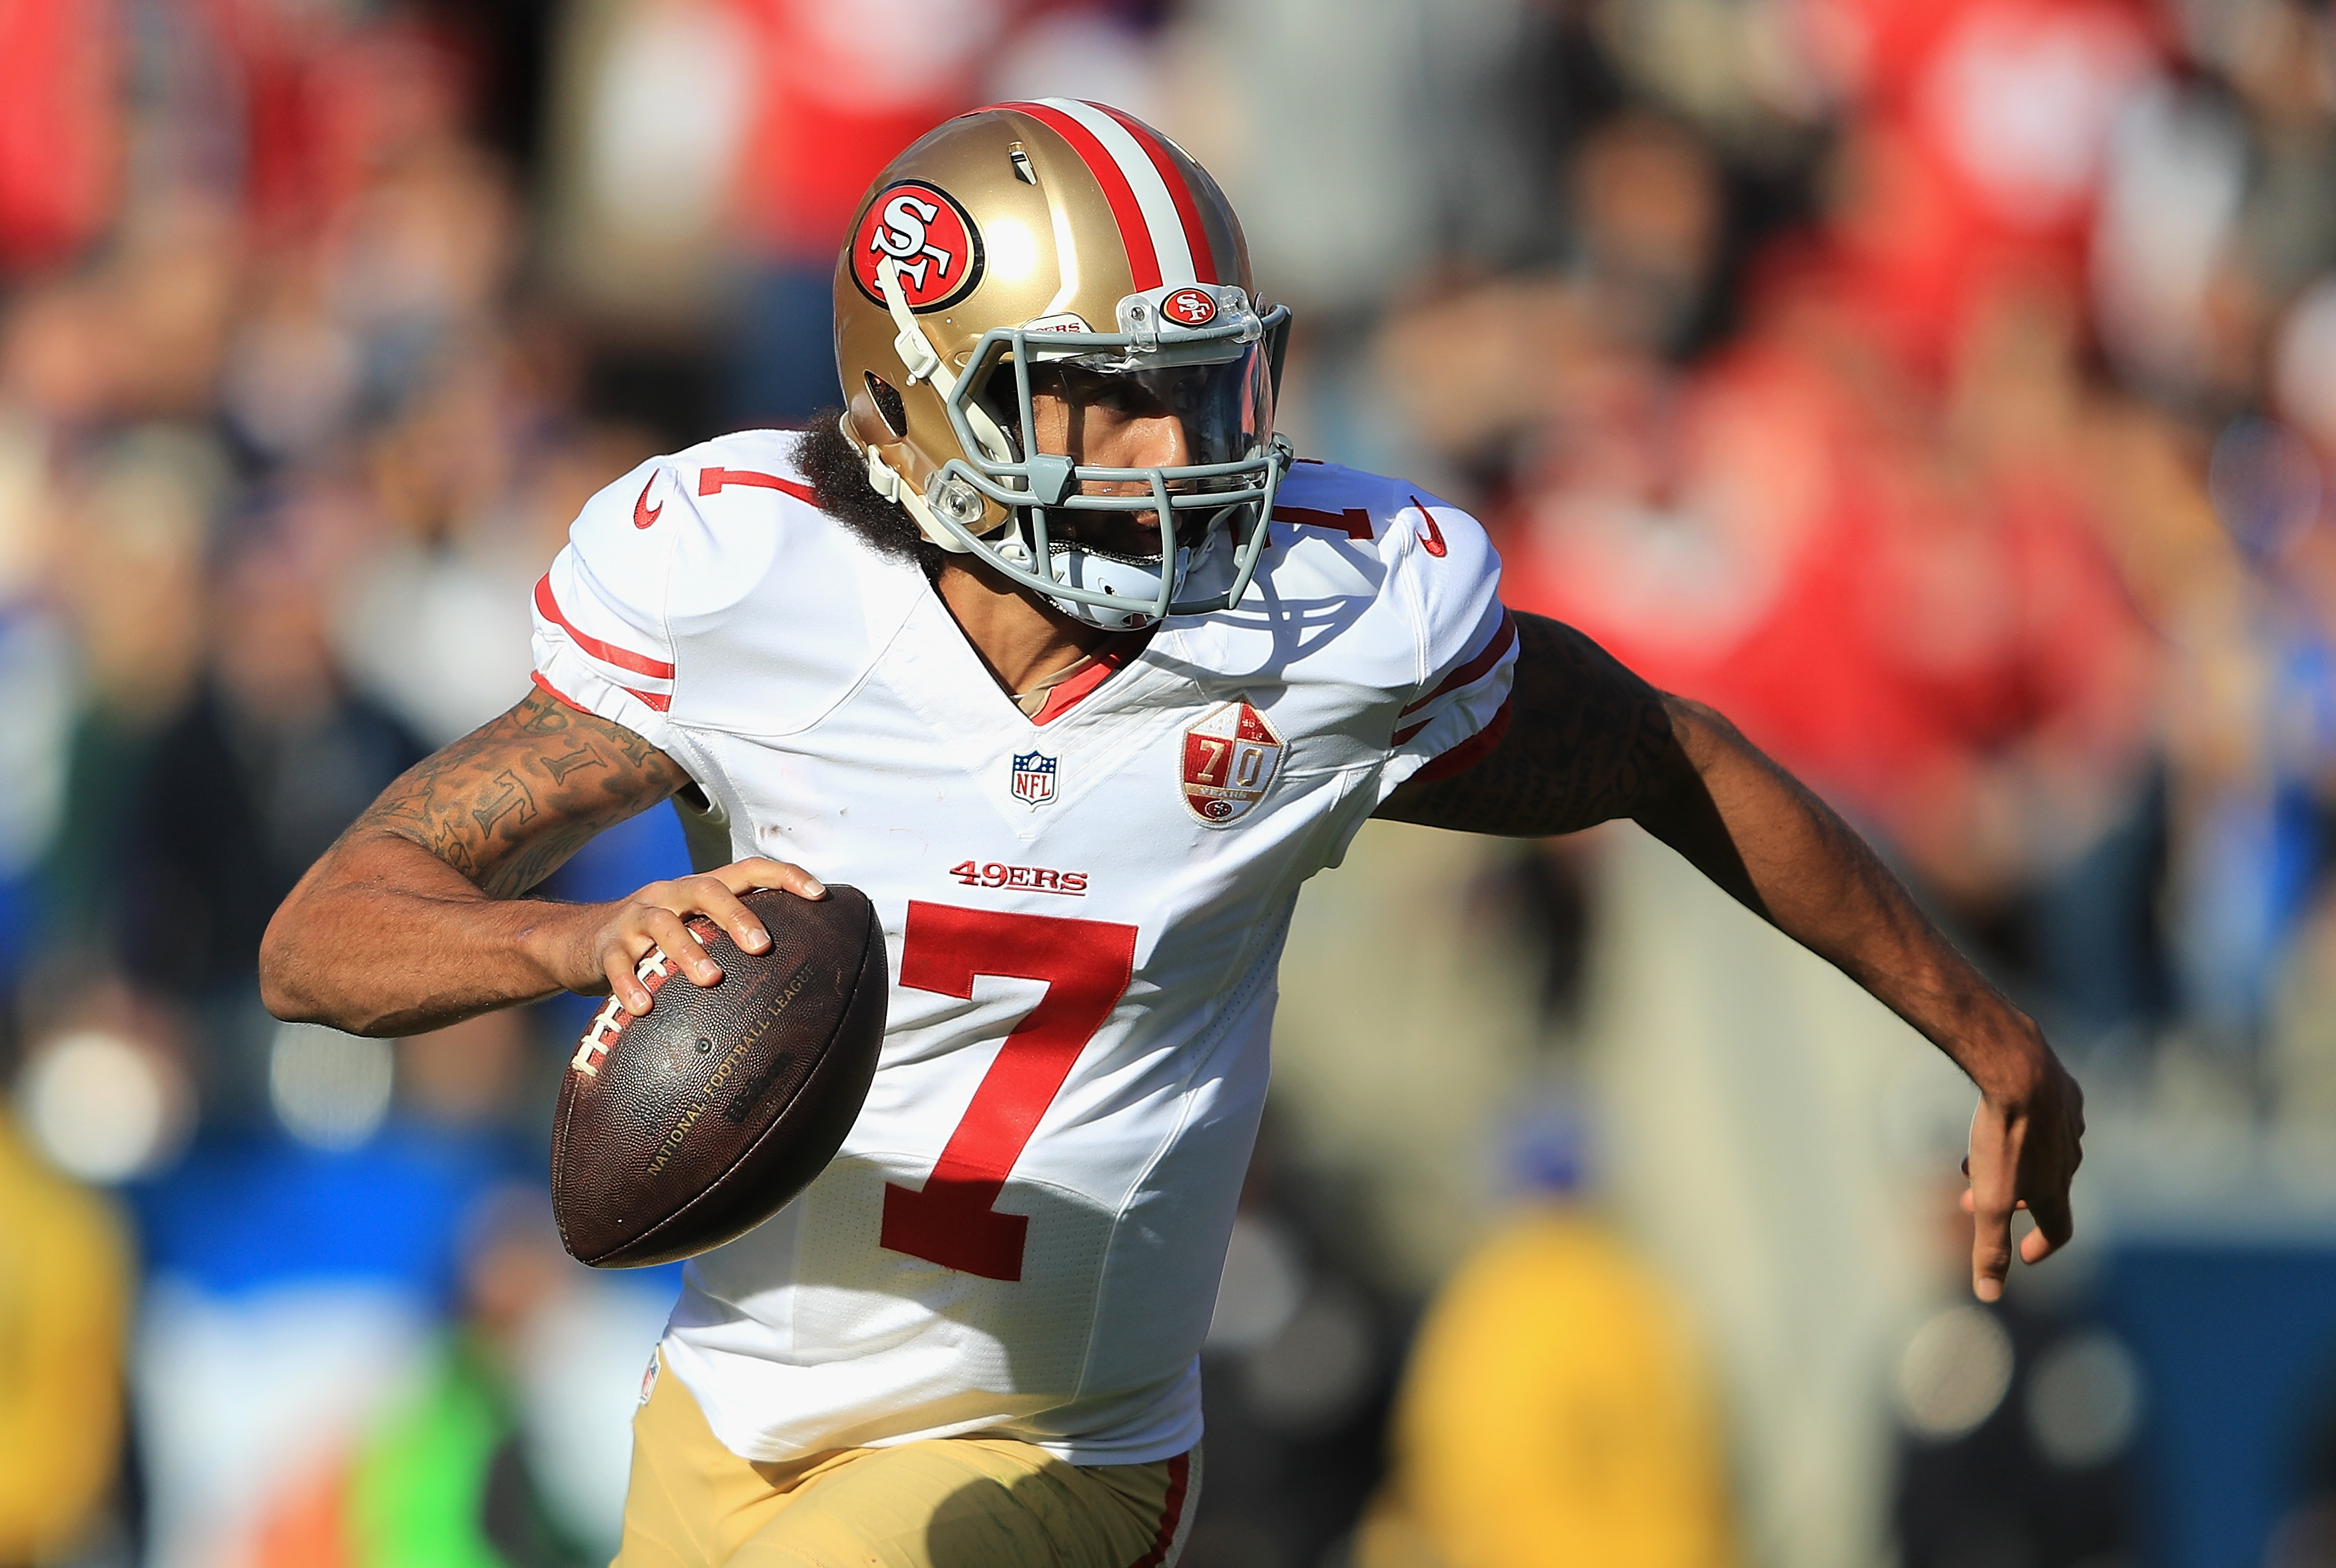 San Francisco quarterback Colin Kaepernick scrambles against the Rams during a 2016 game.